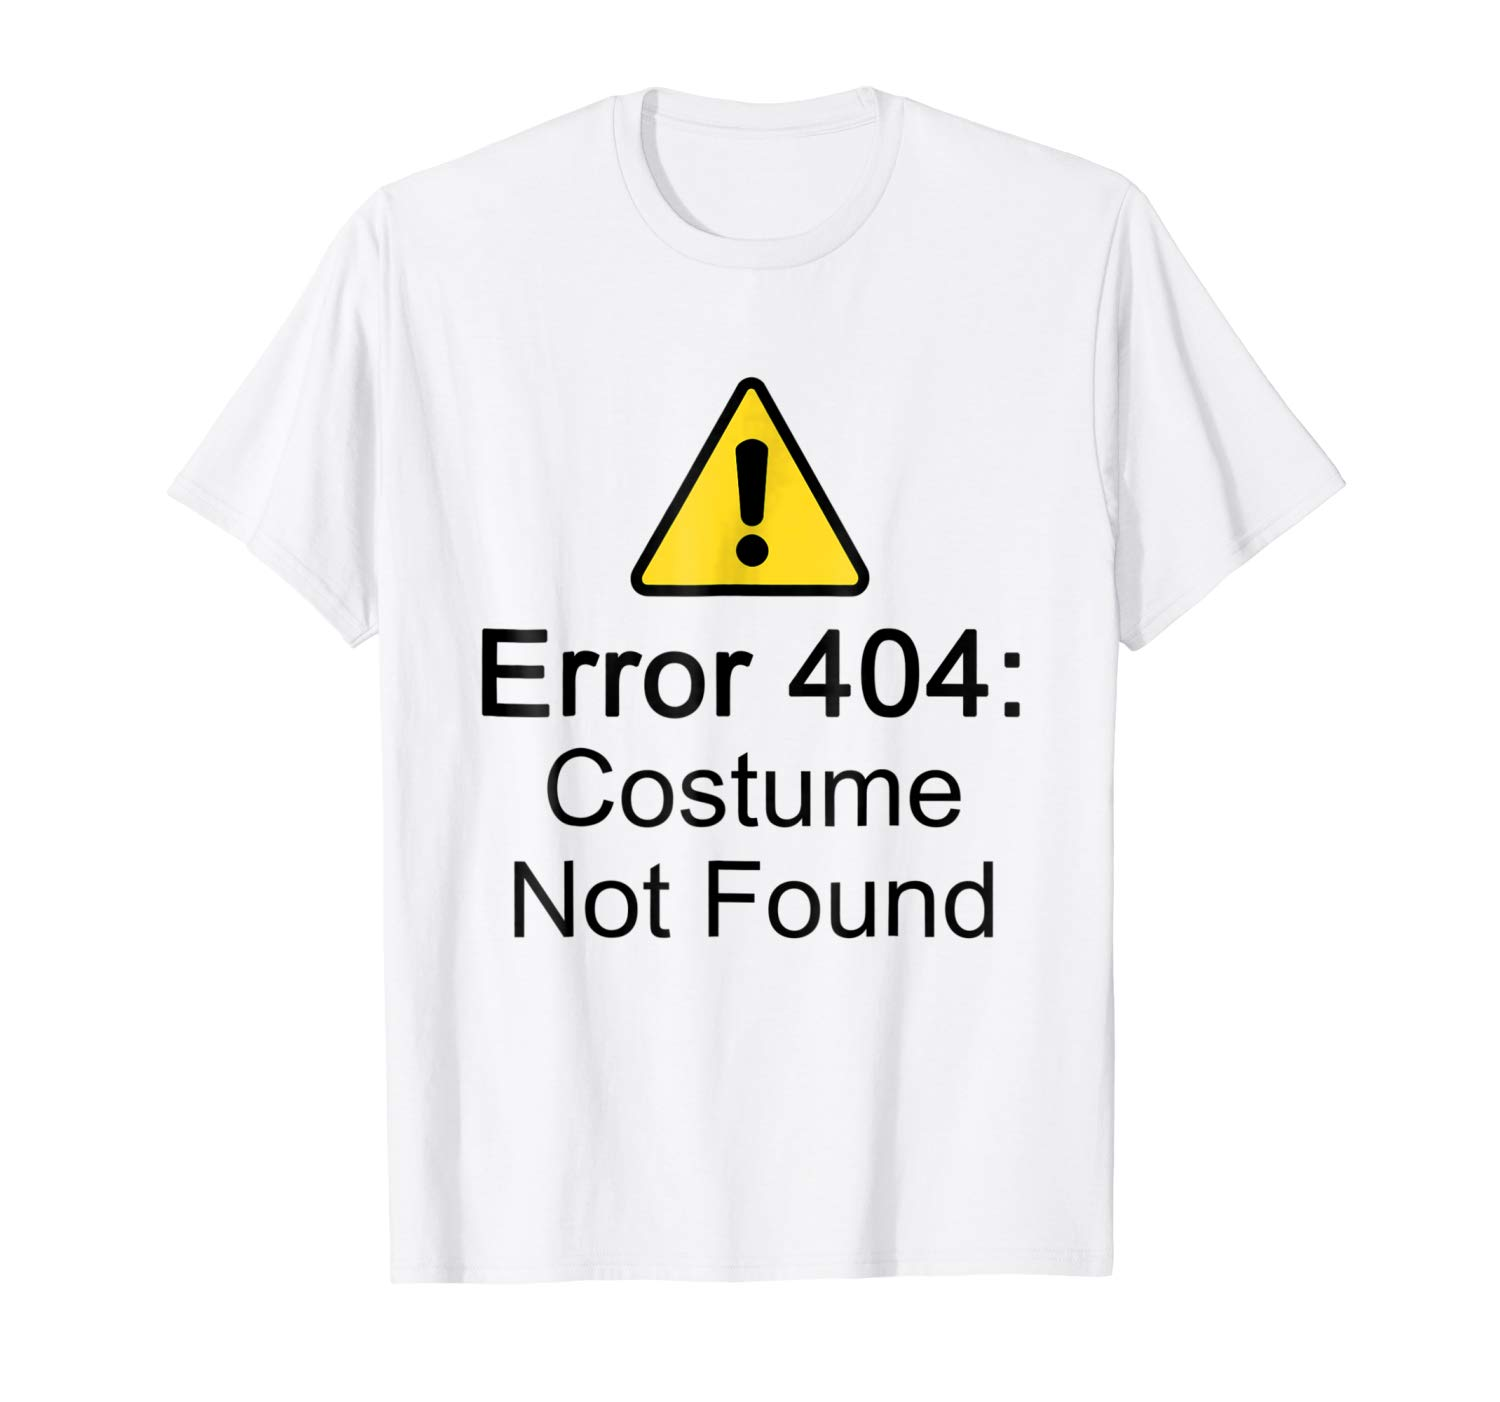 2020 Fashion Mens Short sleeve T <font><b>Shirt</b></font> 100% Cotton <font><b>Error</b></font> <font><b>404</b></font> Costume Not Found Halloween Geek T <font><b>Shirt</b></font> image